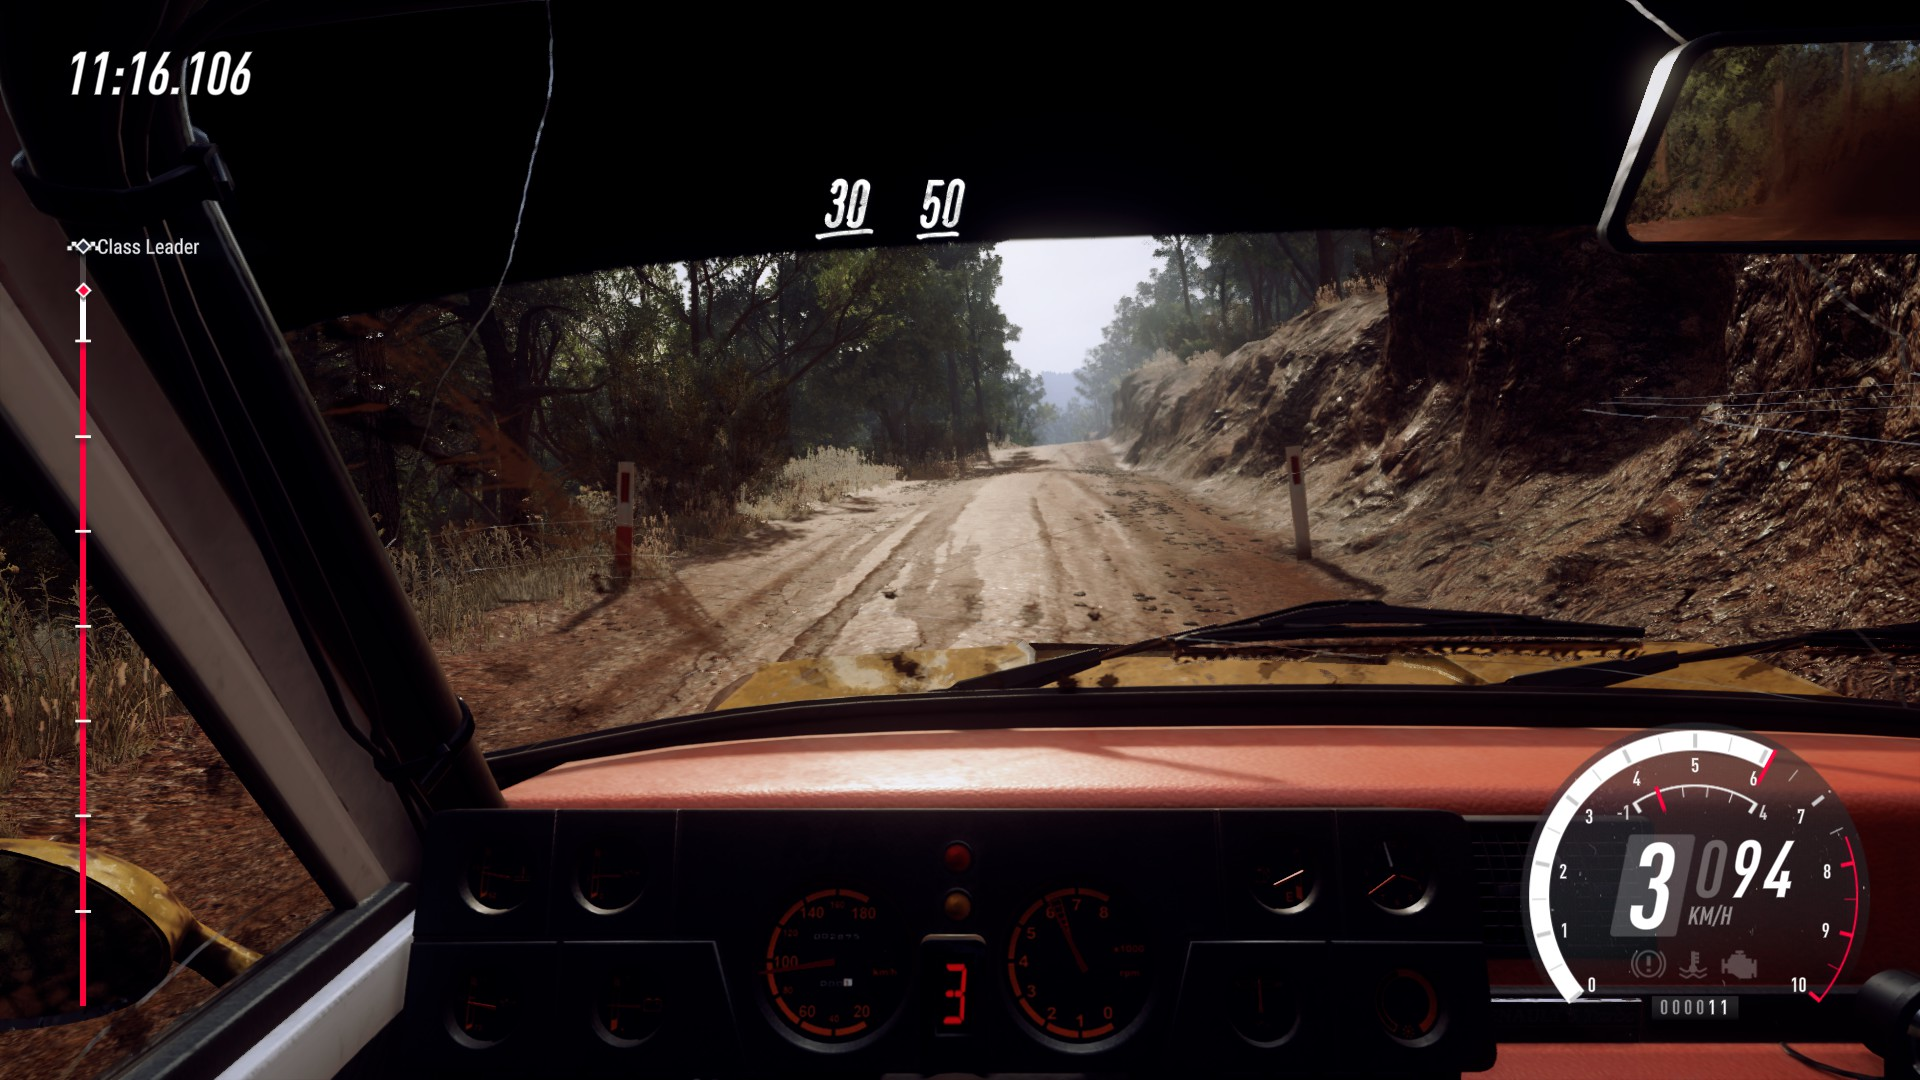 View from inside Lancia Fulvia driving down a dirt road